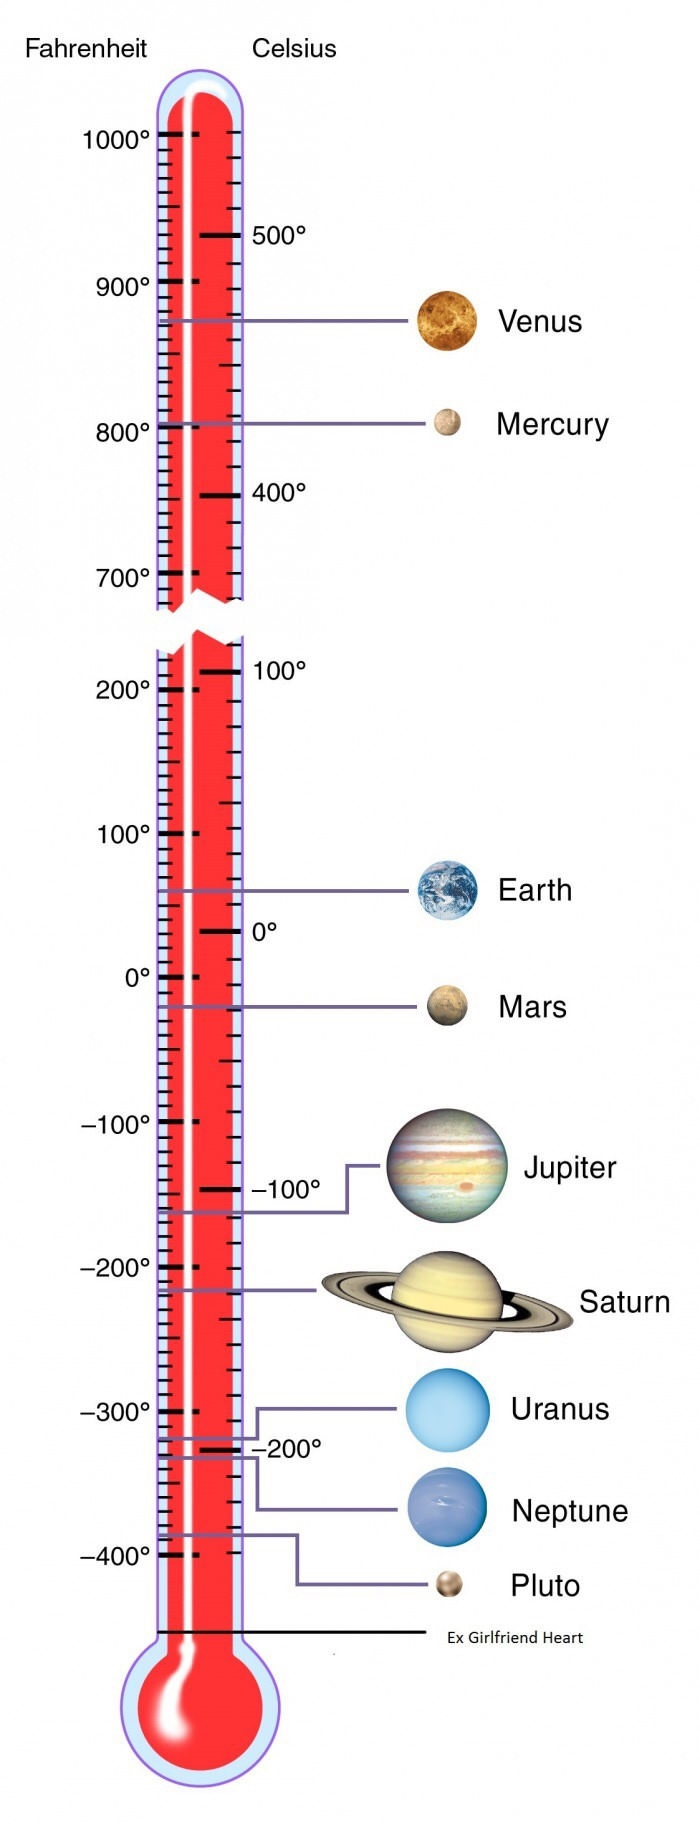 The average temperature of all the planets